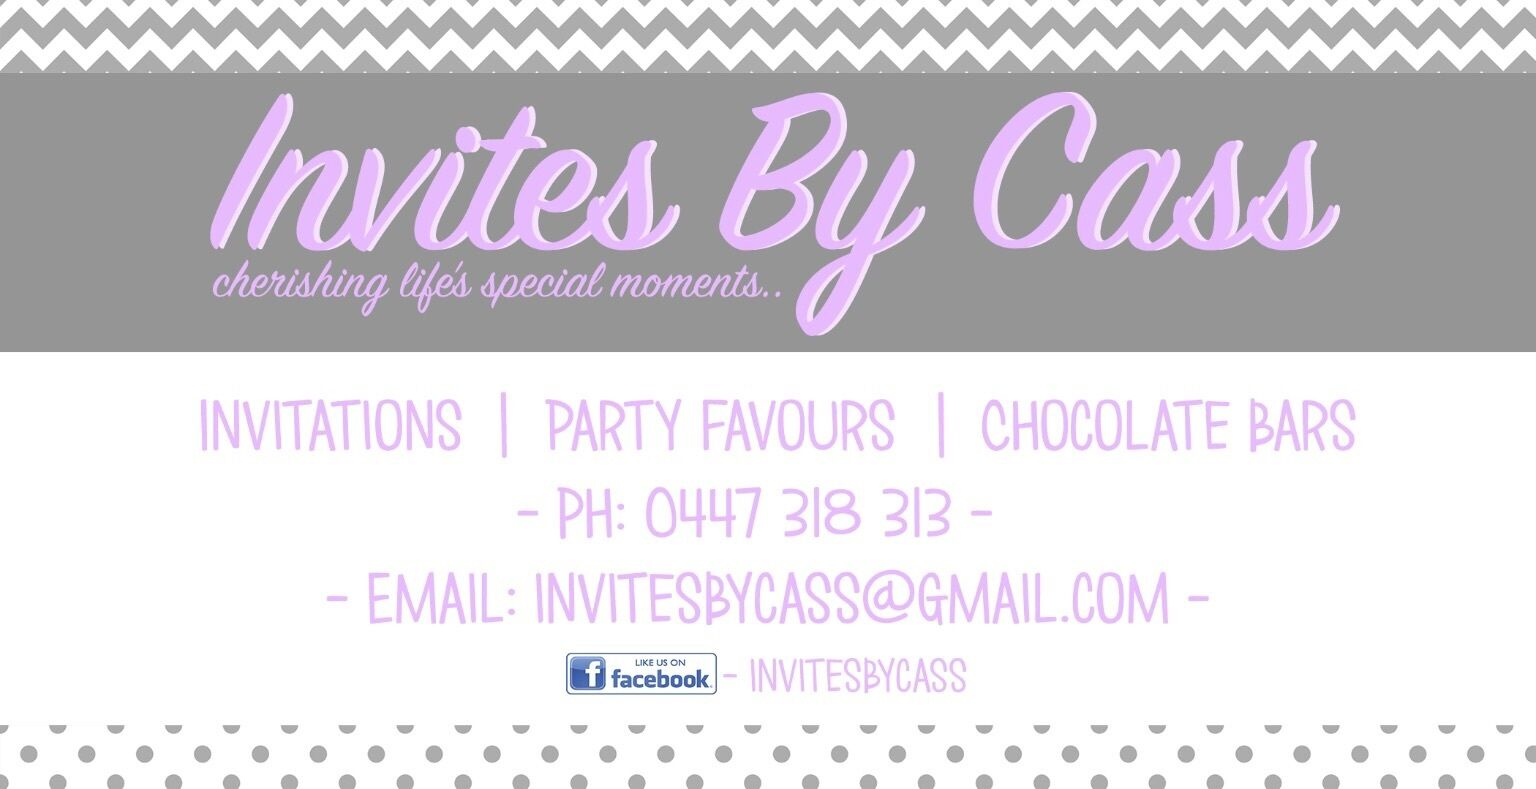 Invites by cass